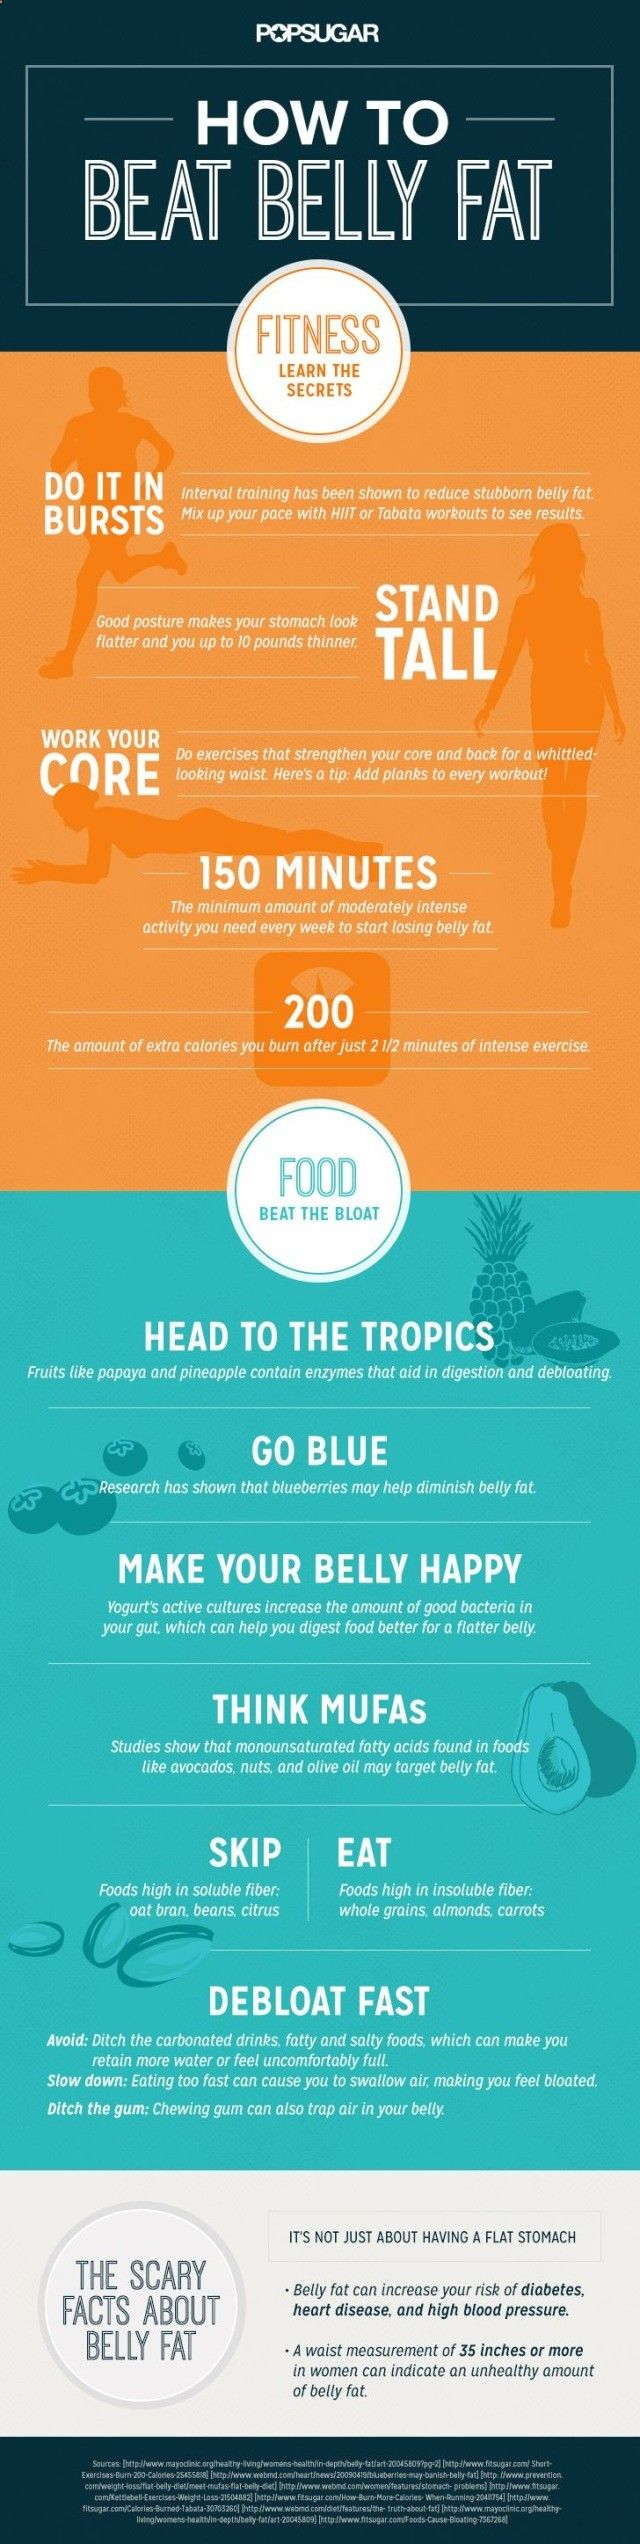 Looking your best begins with feeling strong and confident in your body. Weve compiled a few smart habits that will help you debloat, detox, and get that flat belly: pin or print this infographic for reference.